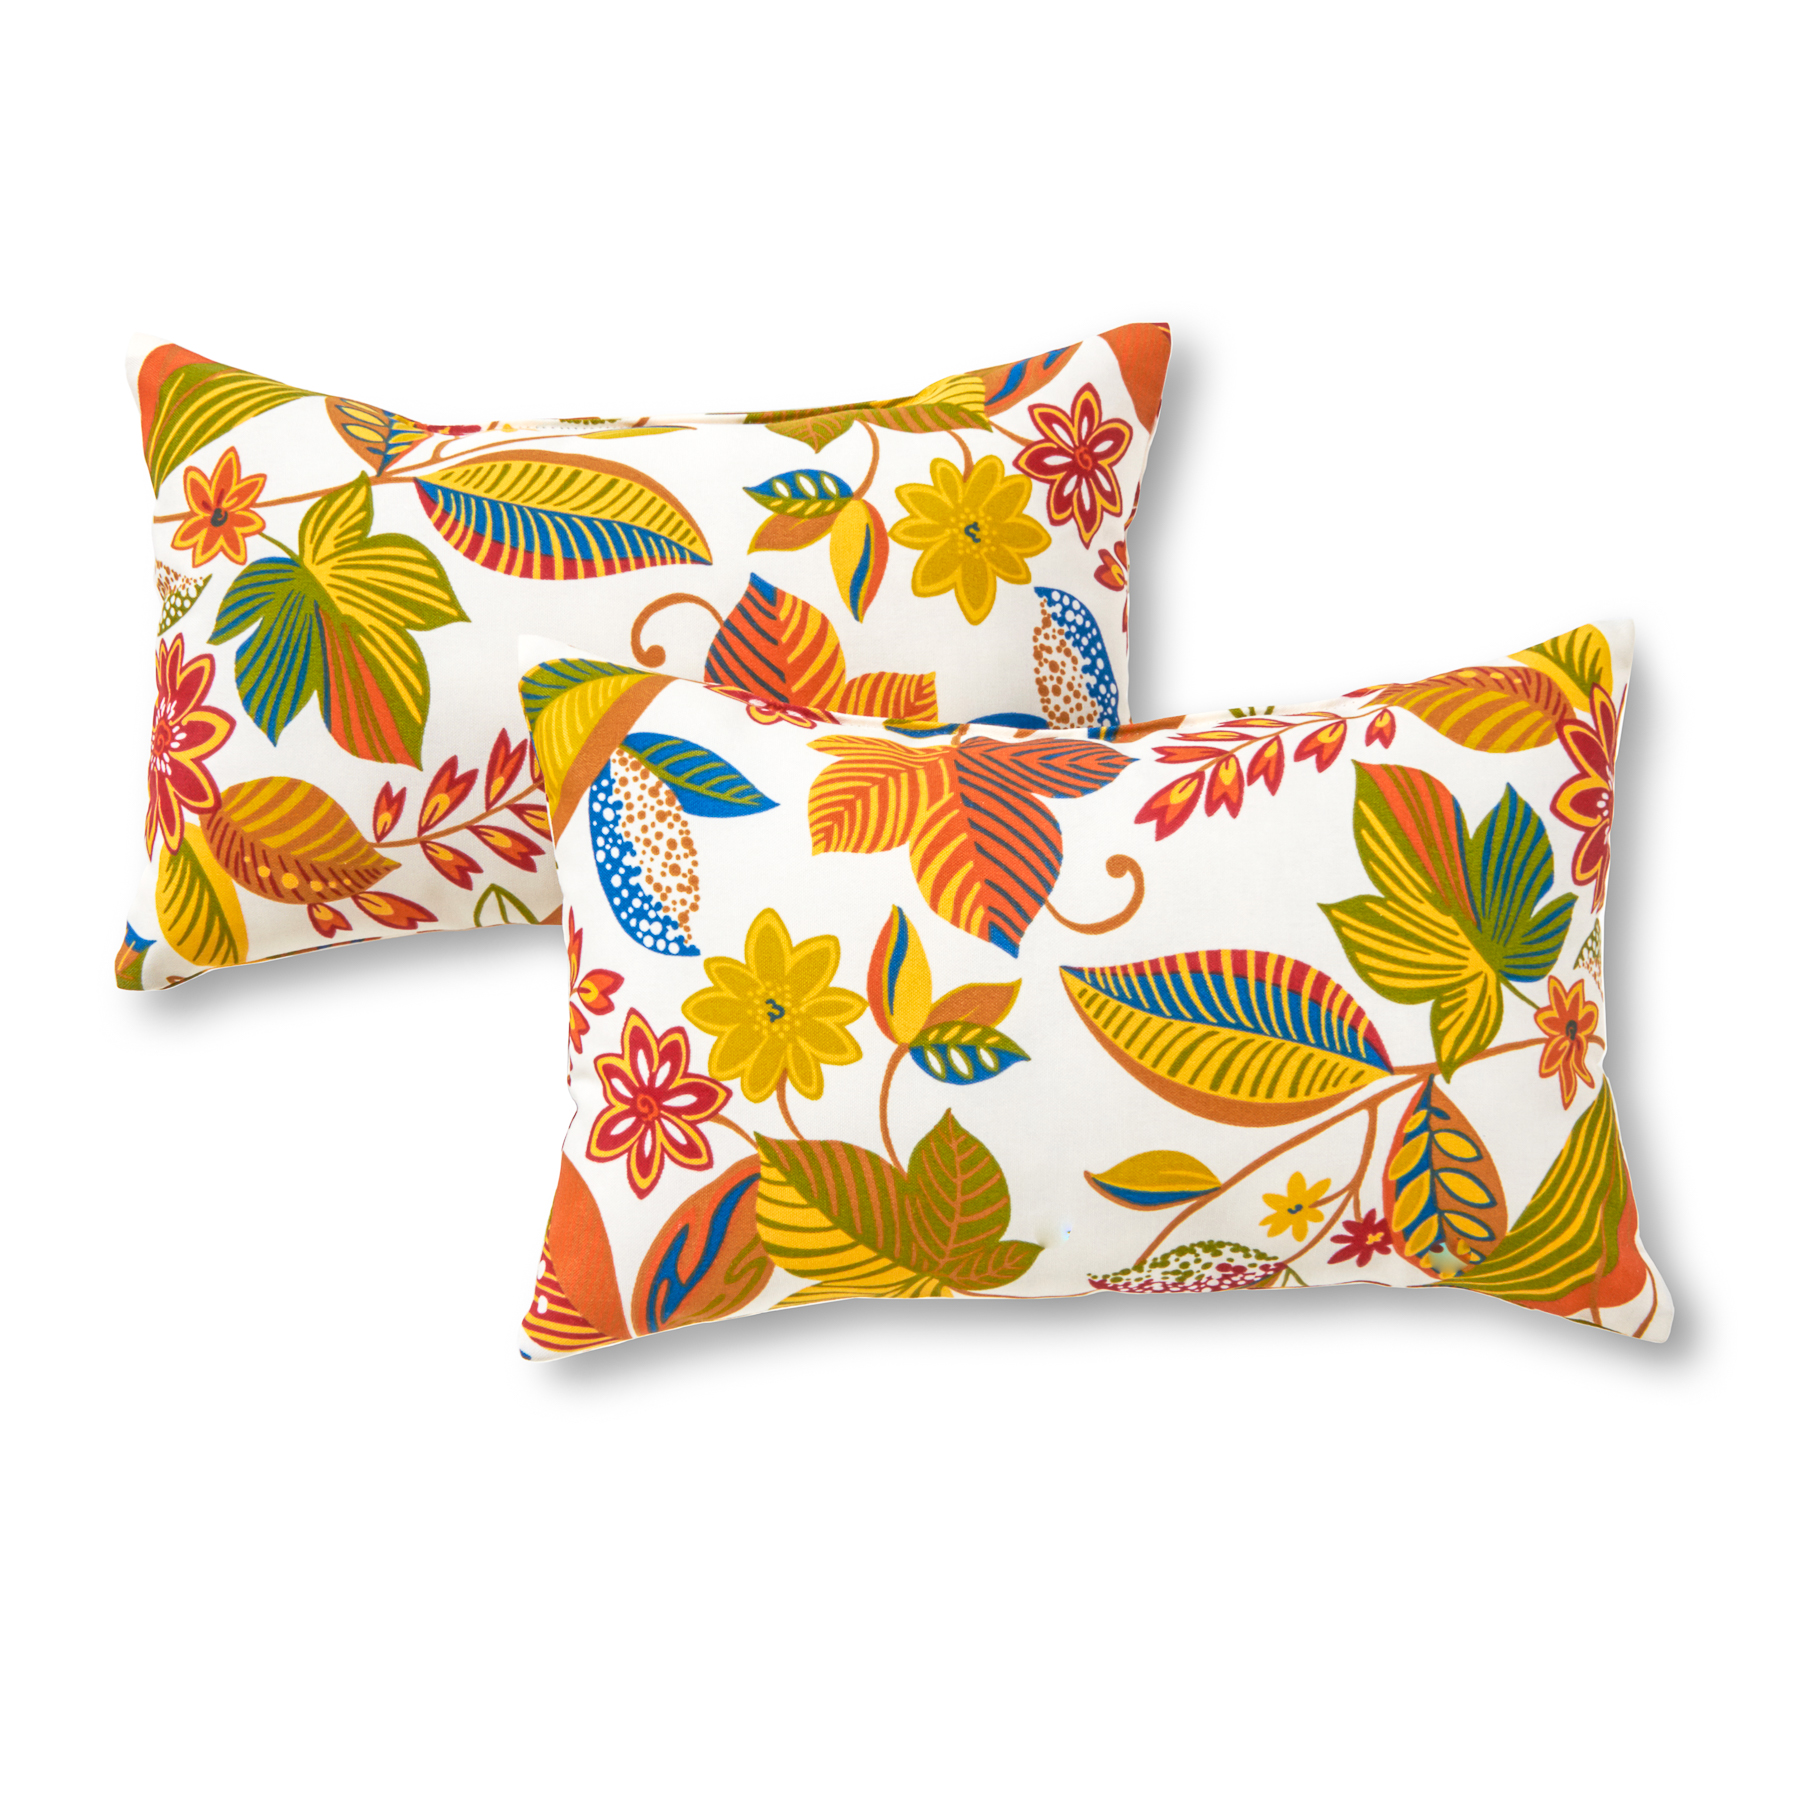 Greendale Home Fashions Esprit Floral Rectangle Outdoor Accent Pillow, Set of 2